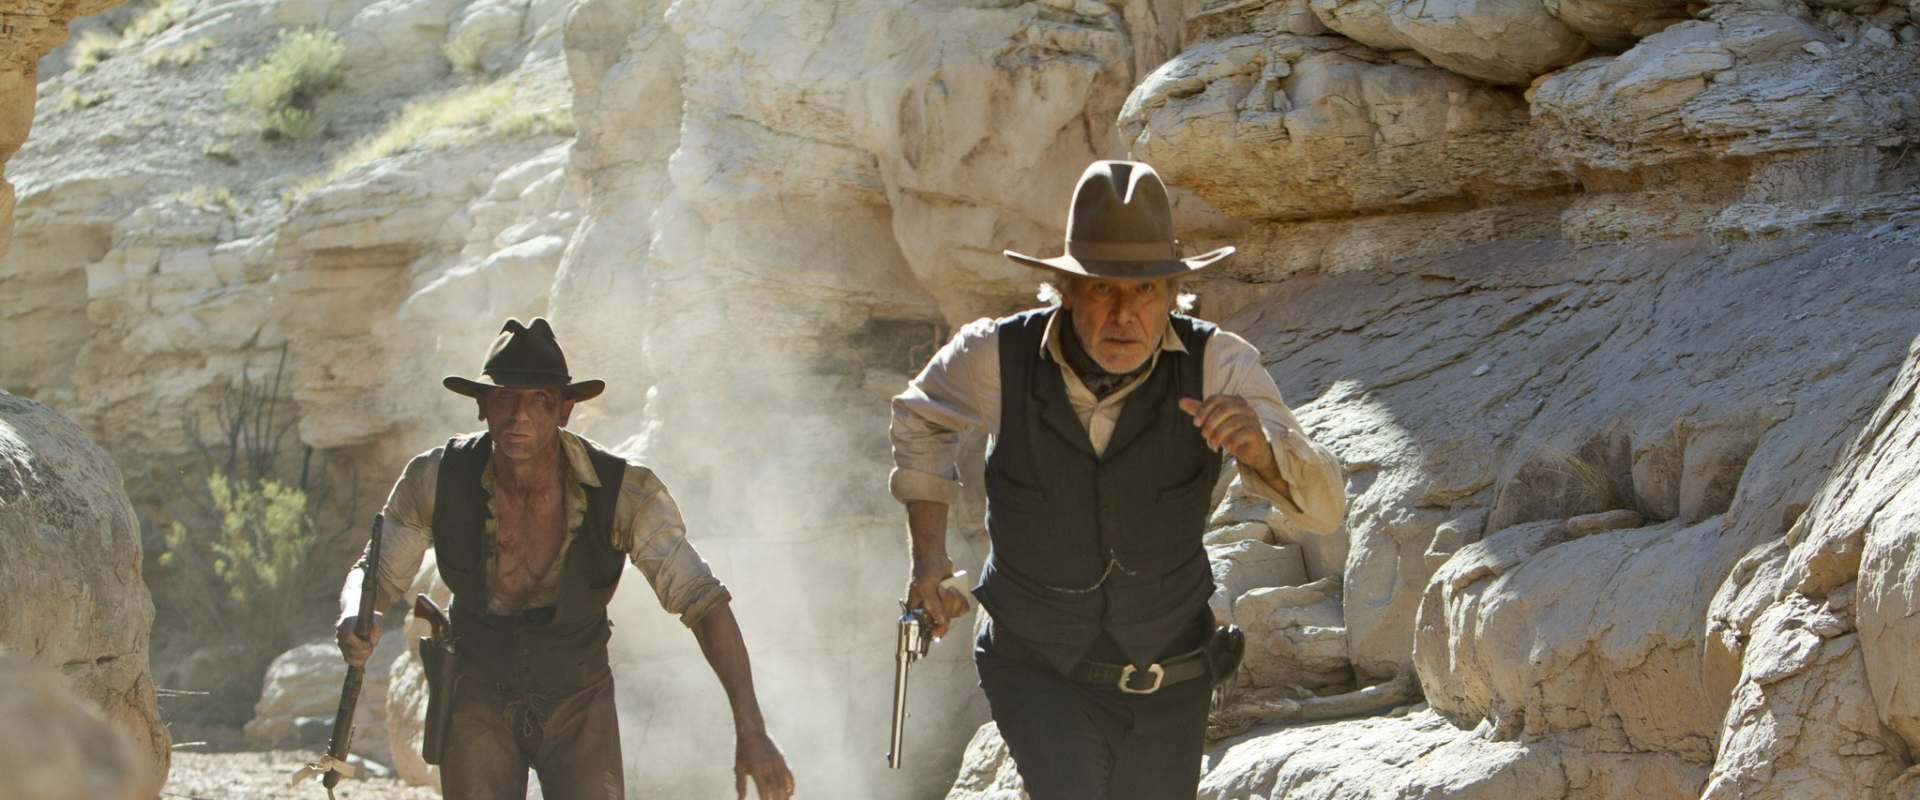 Cowboys & Aliens background 1